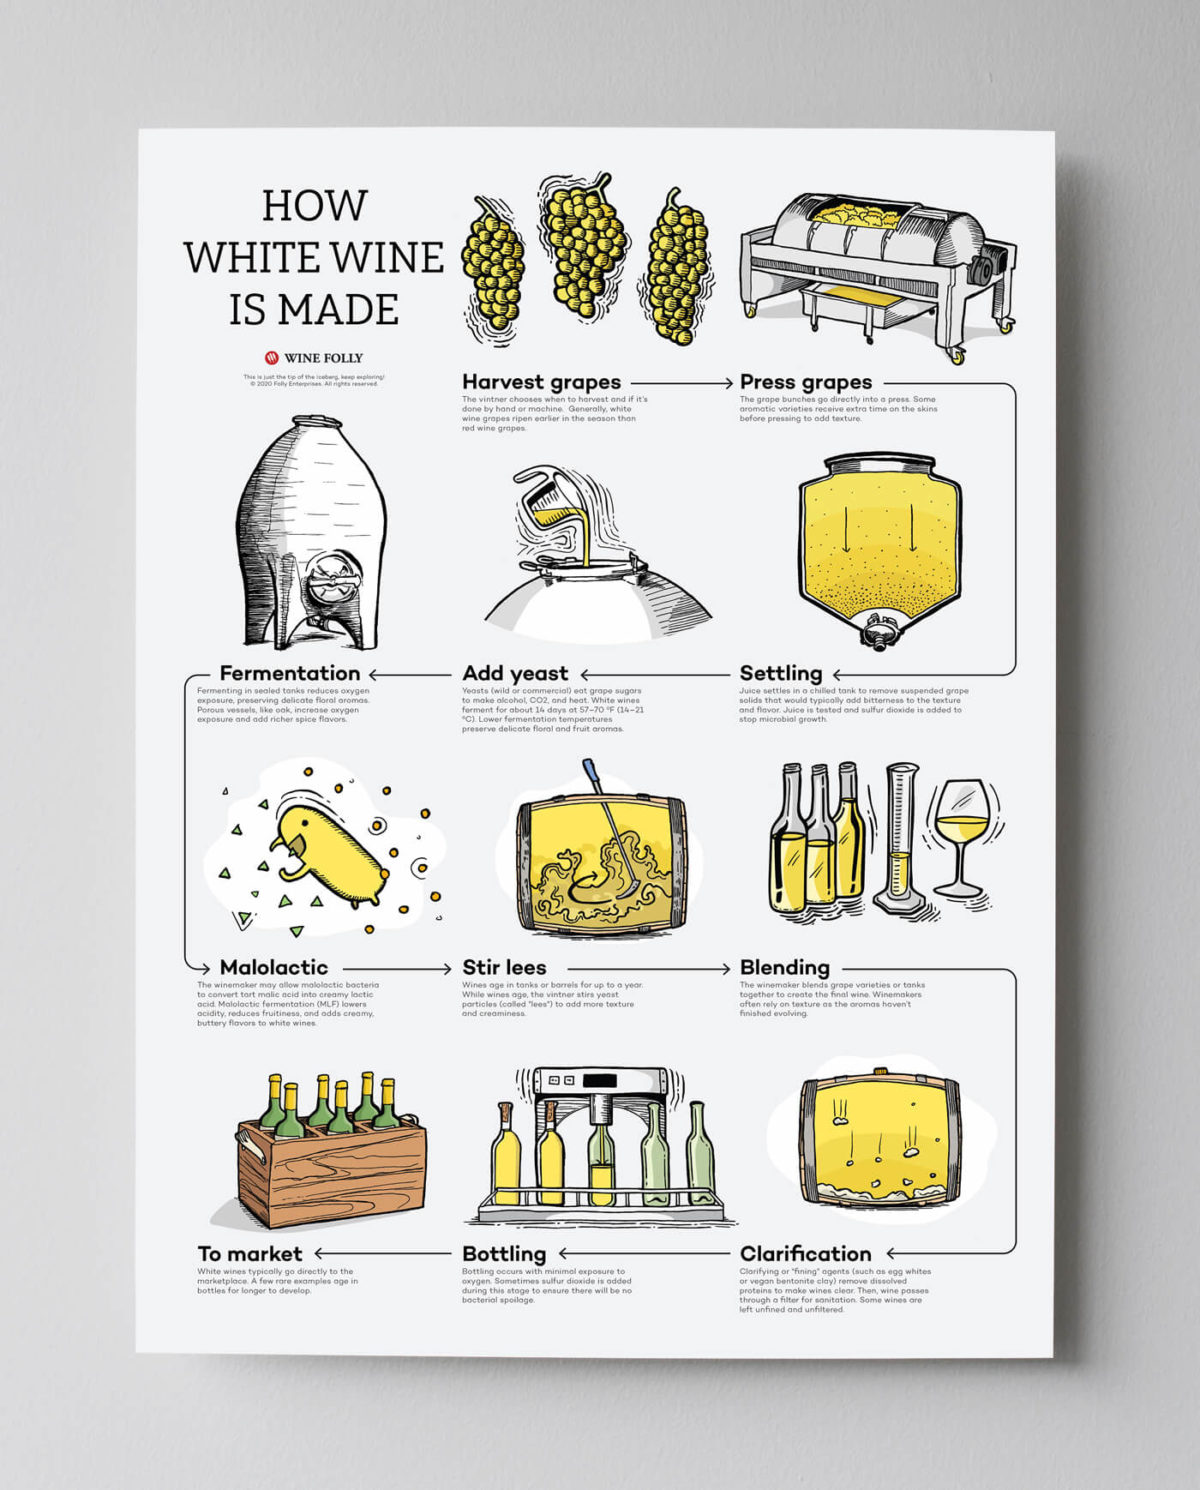 how-white-wine-is-made-poster-gray-bg